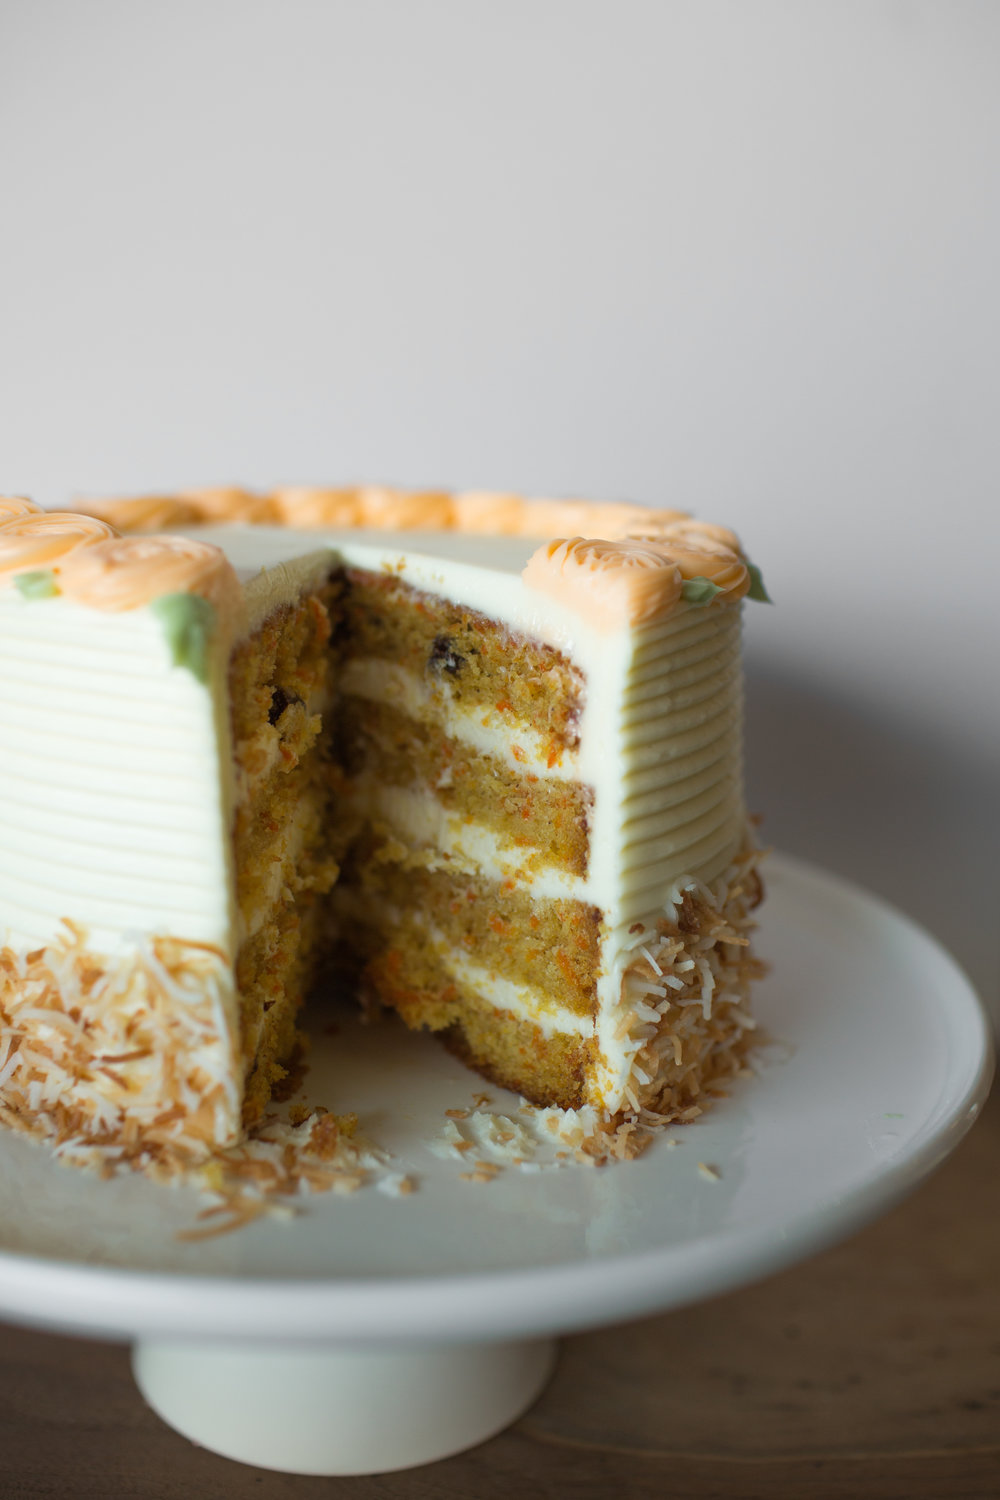 carrot cake w/ cream cheese frosting and toasted coconut.